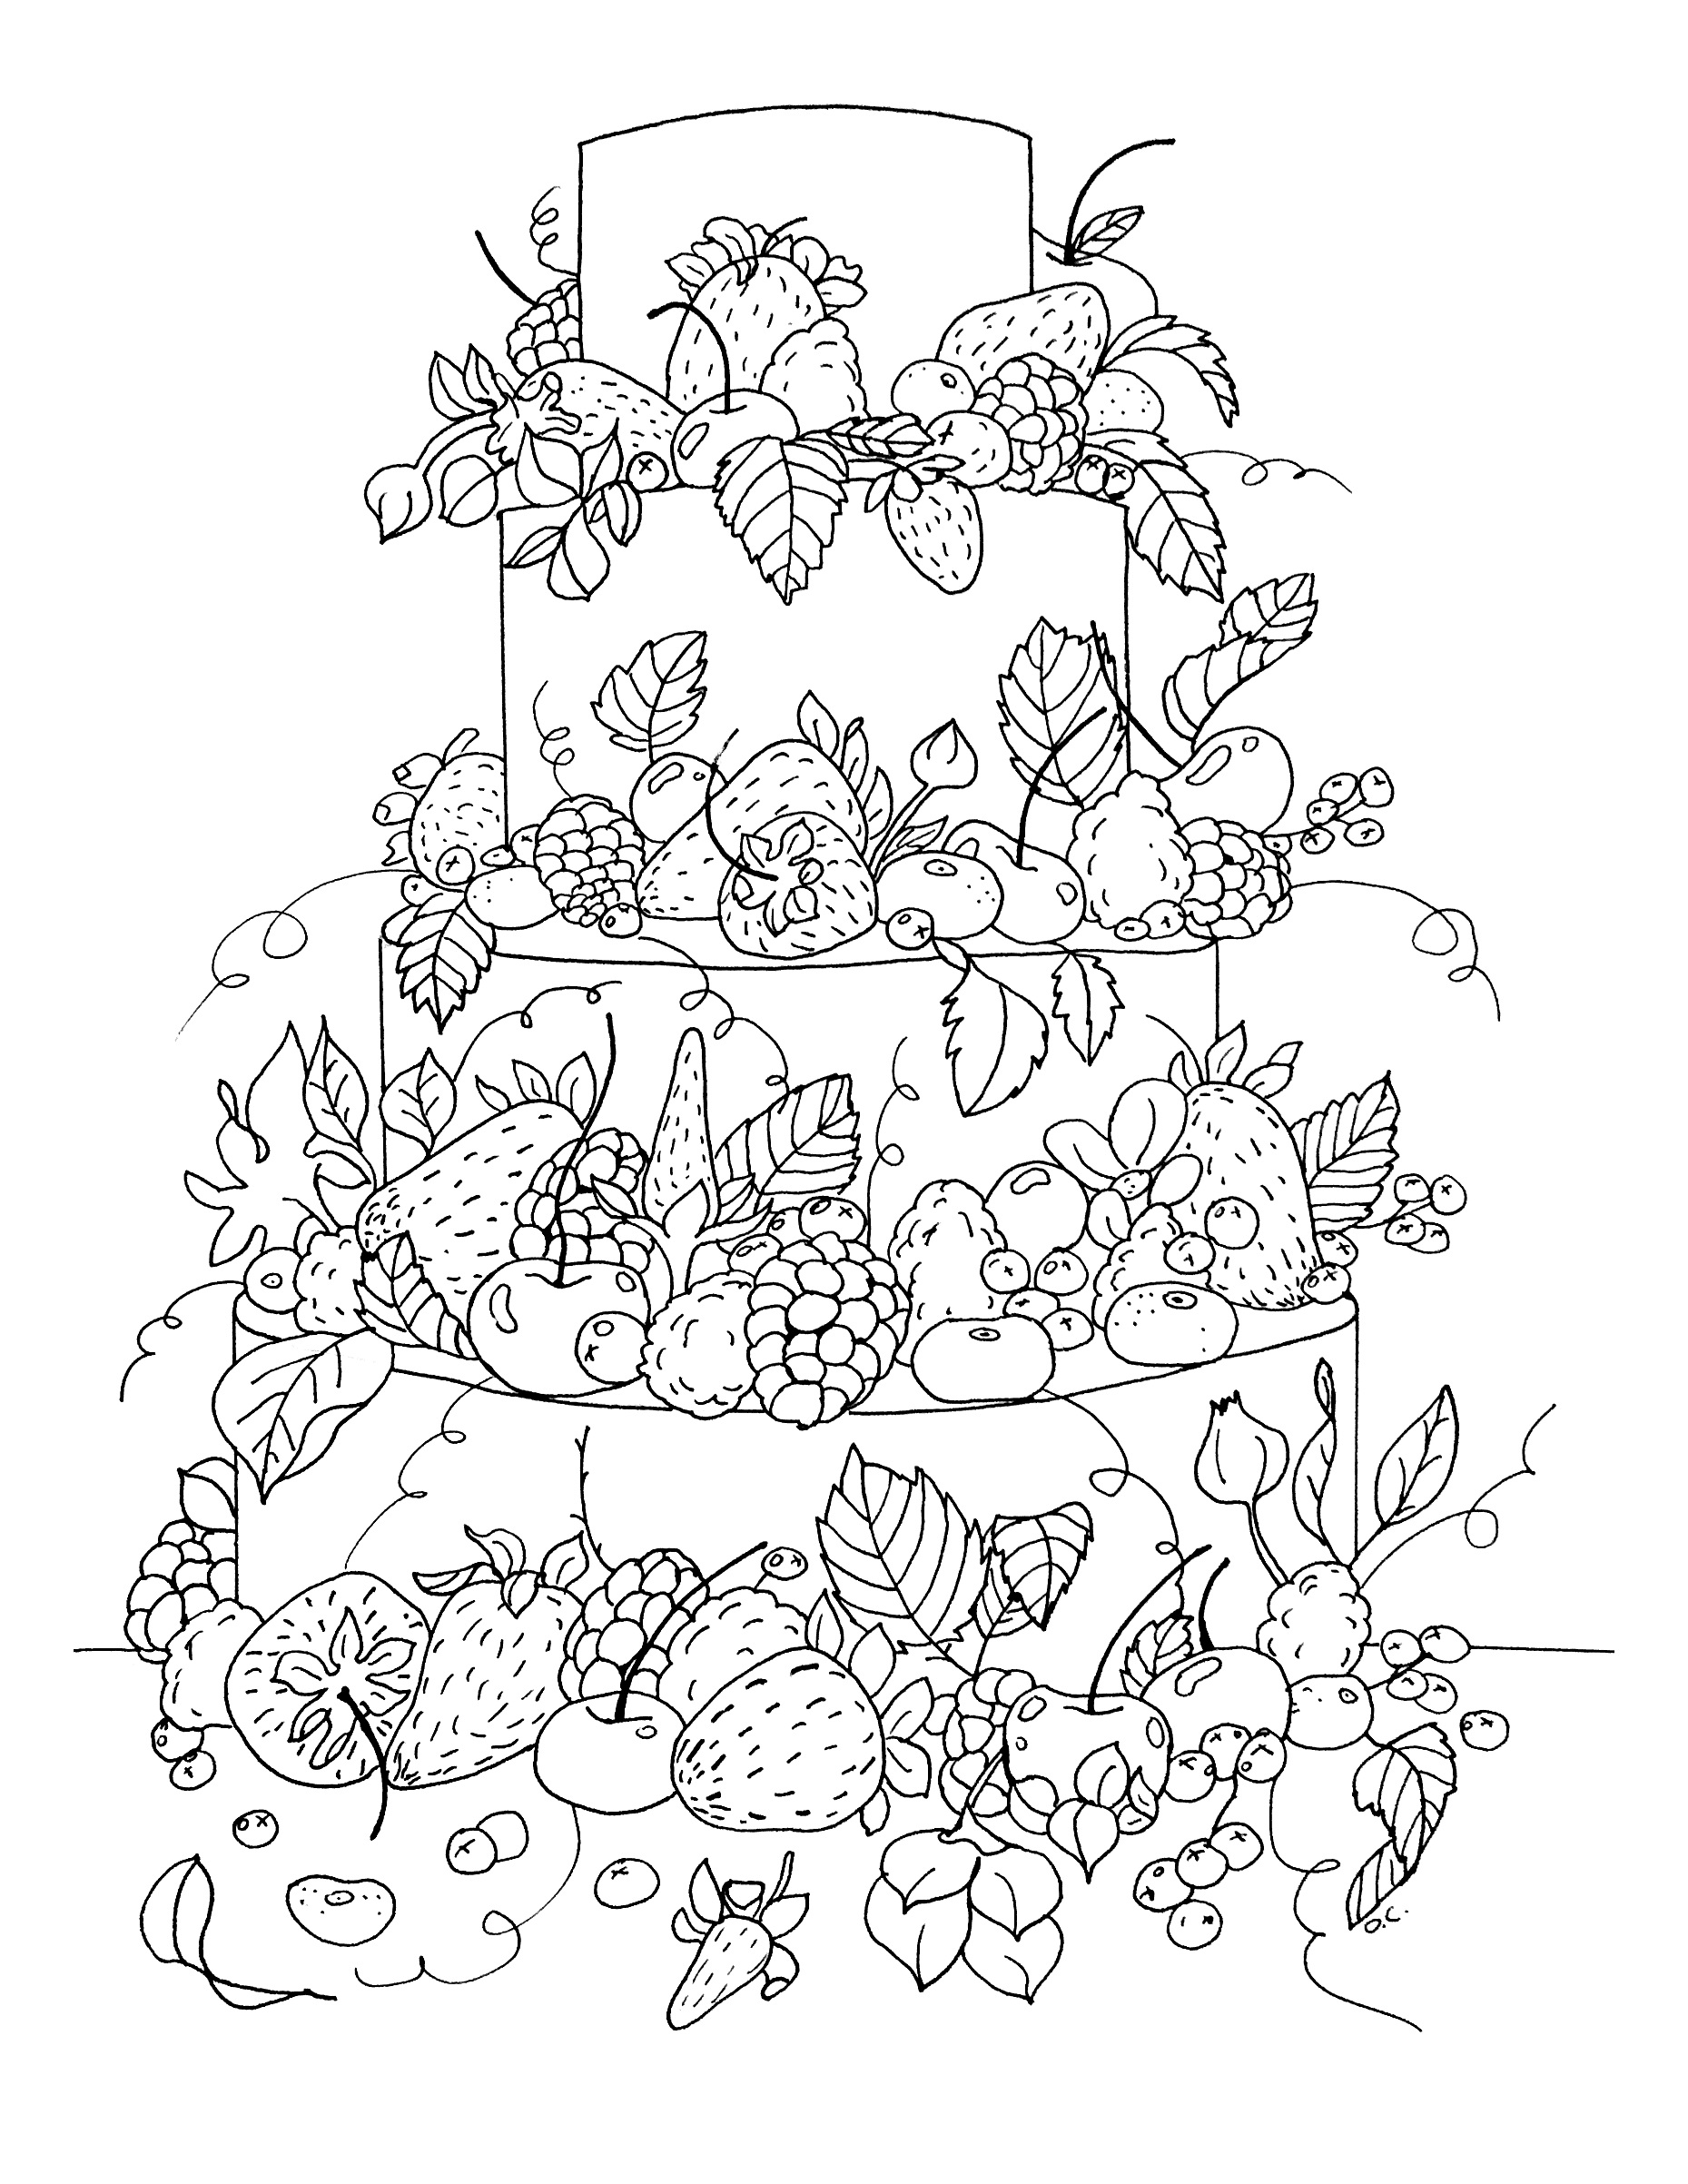 coloriage gros gateau fruite par olivier as well as cupcakes coloring pages printable animals 1 on cupcakes coloring pages printable animals also with cupcakes coloring pages printable animals 2 on cupcakes coloring pages printable animals including cupcakes coloring pages printable animals 3 on cupcakes coloring pages printable animals further cupcakes coloring pages printable animals 4 on cupcakes coloring pages printable animals